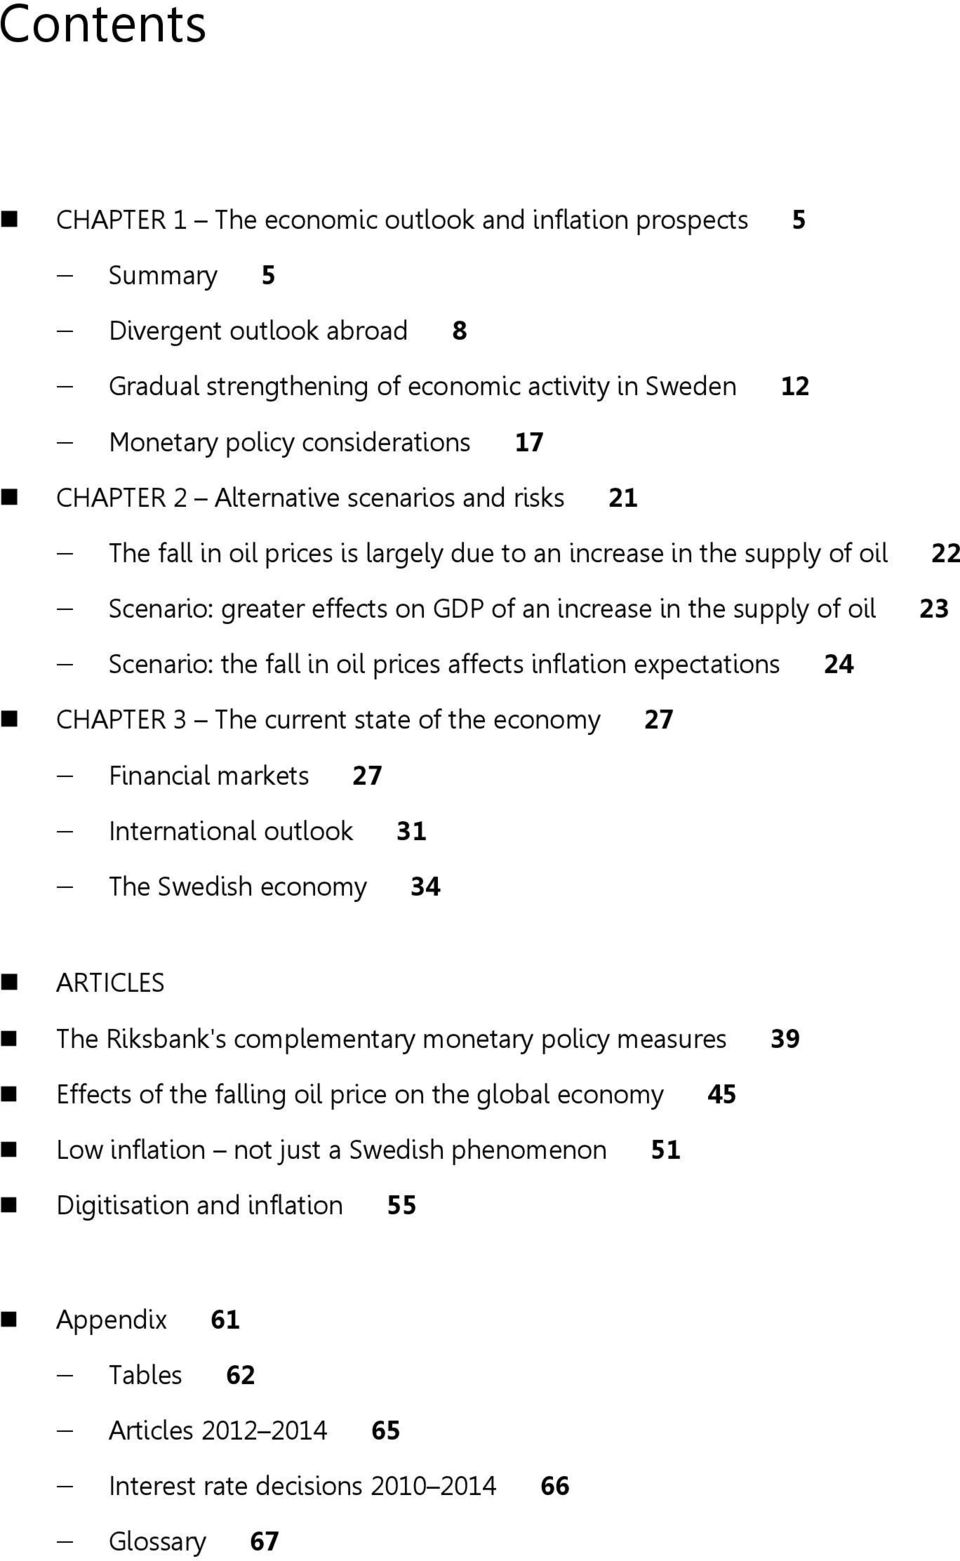 in oil prices affects inflation expectations CHAPTER 3 The current state of the economy 7 Financial markets 7 International outlook 31 The Swedish economy 3 ARTICLES The Riksbank's complementary